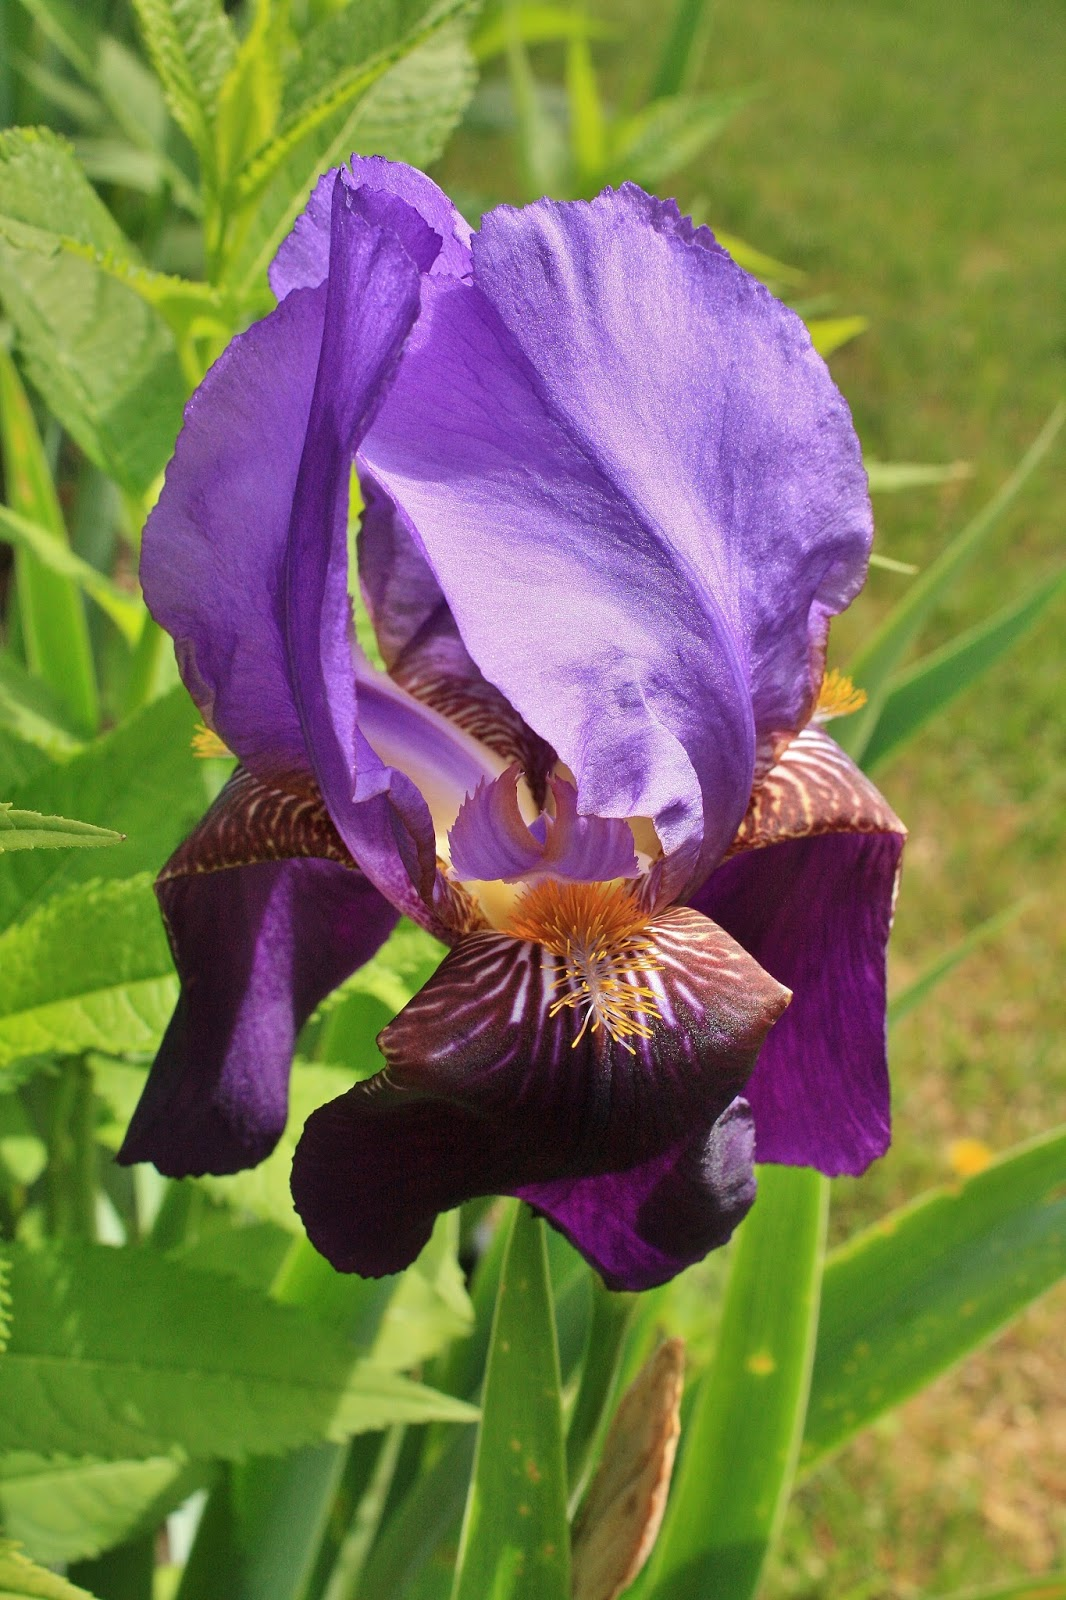 September Violets Tips for Iris and a Mystery Flower